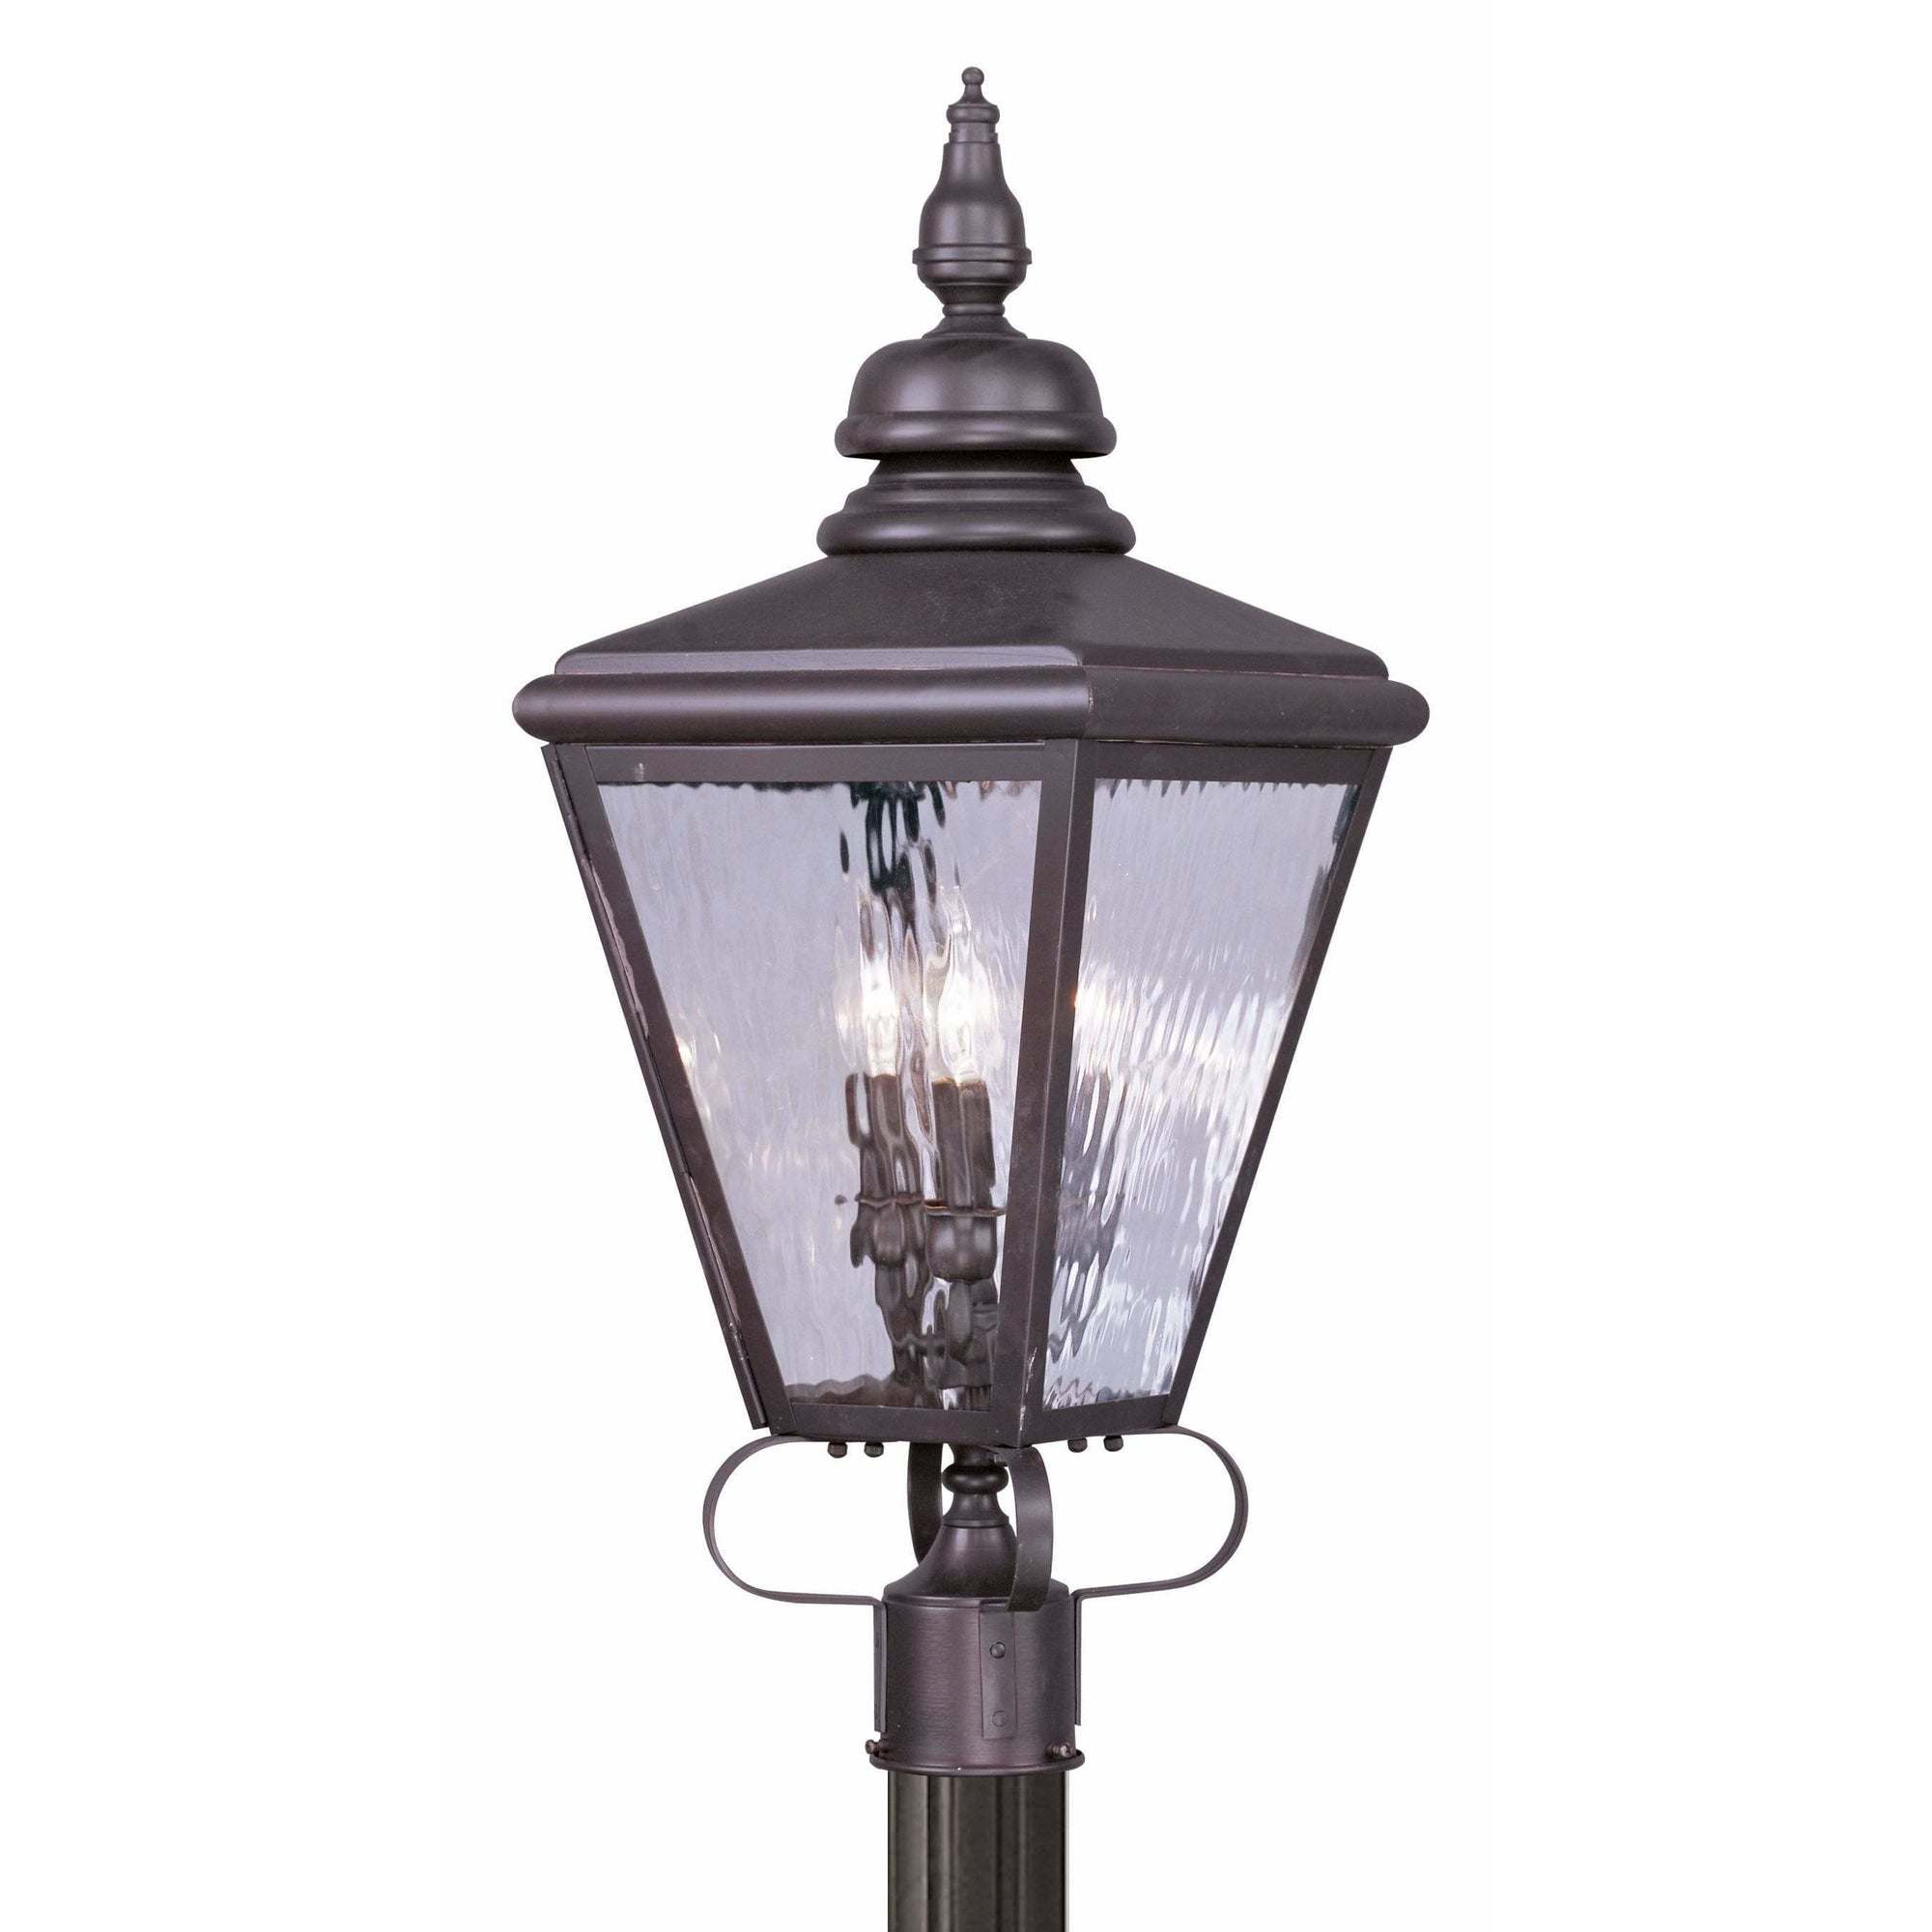 Livex Lighting Outdoor Post Top Lanterns Bronze / Clear Water Glass Cambridge Bronze Outdoor Post Top Lantern By Livex Lighting 2034-07